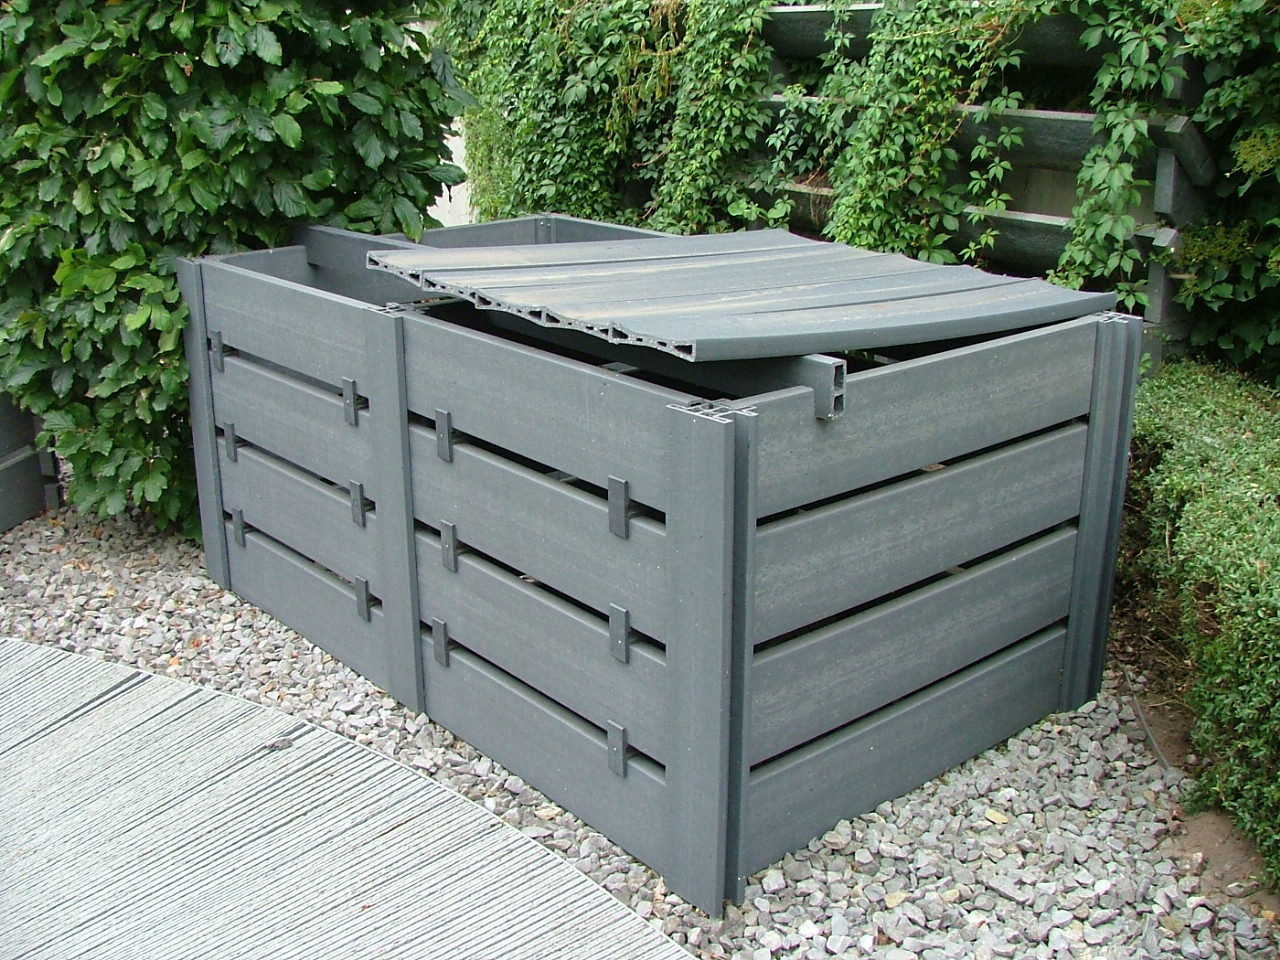 jardisart le magasin composters composteur plastique. Black Bedroom Furniture Sets. Home Design Ideas